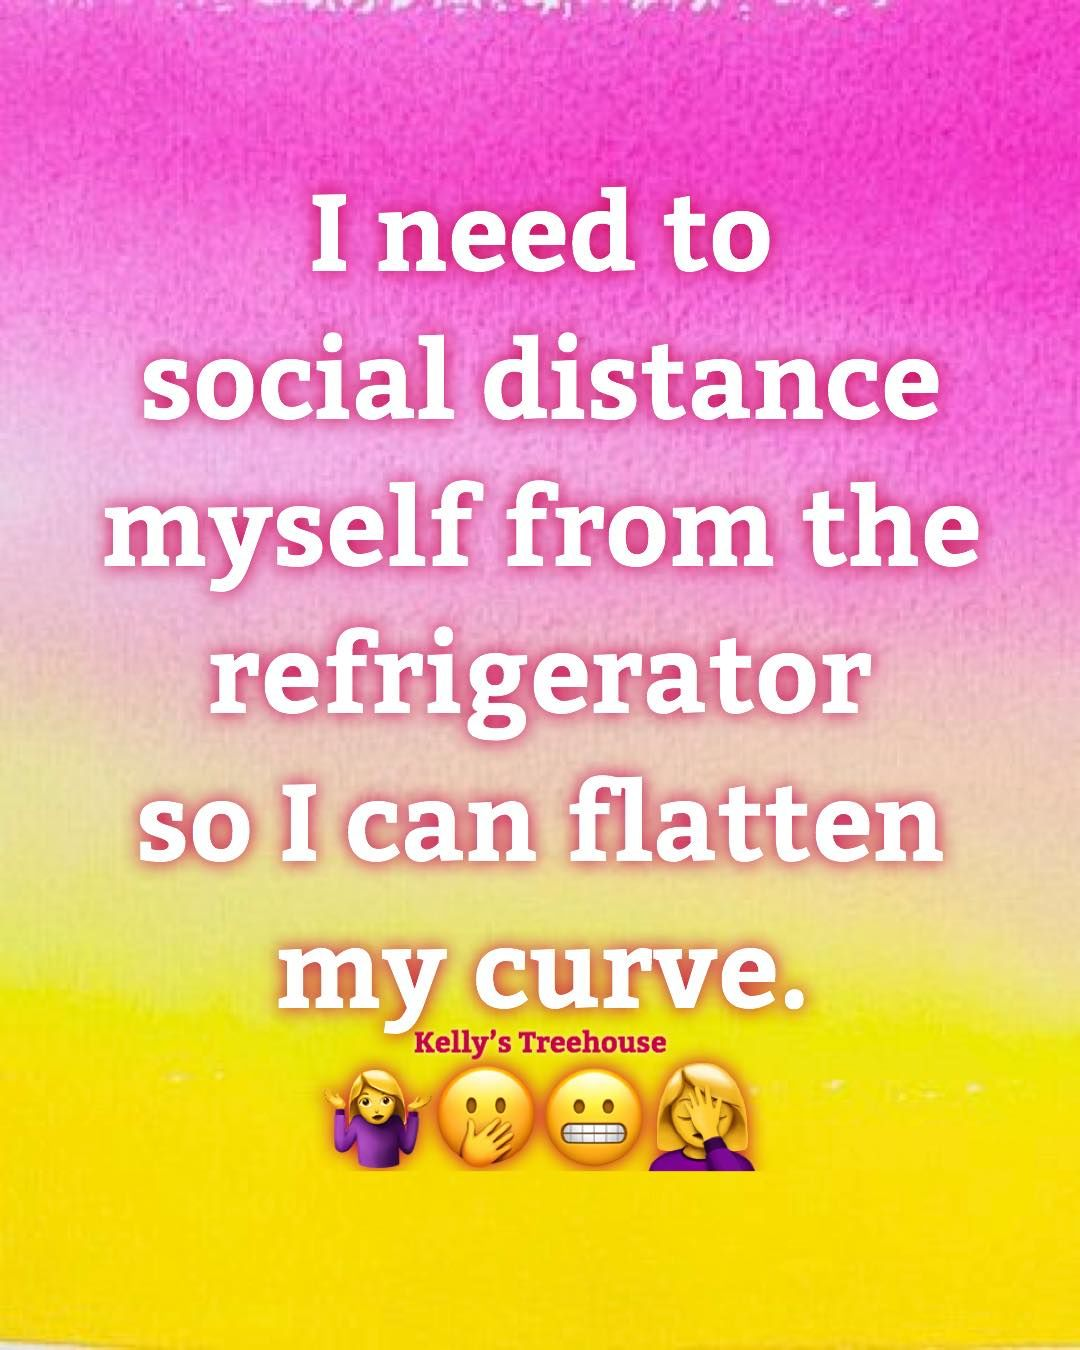 I need to social distance myself from the refrigerator so i can flatten my curve